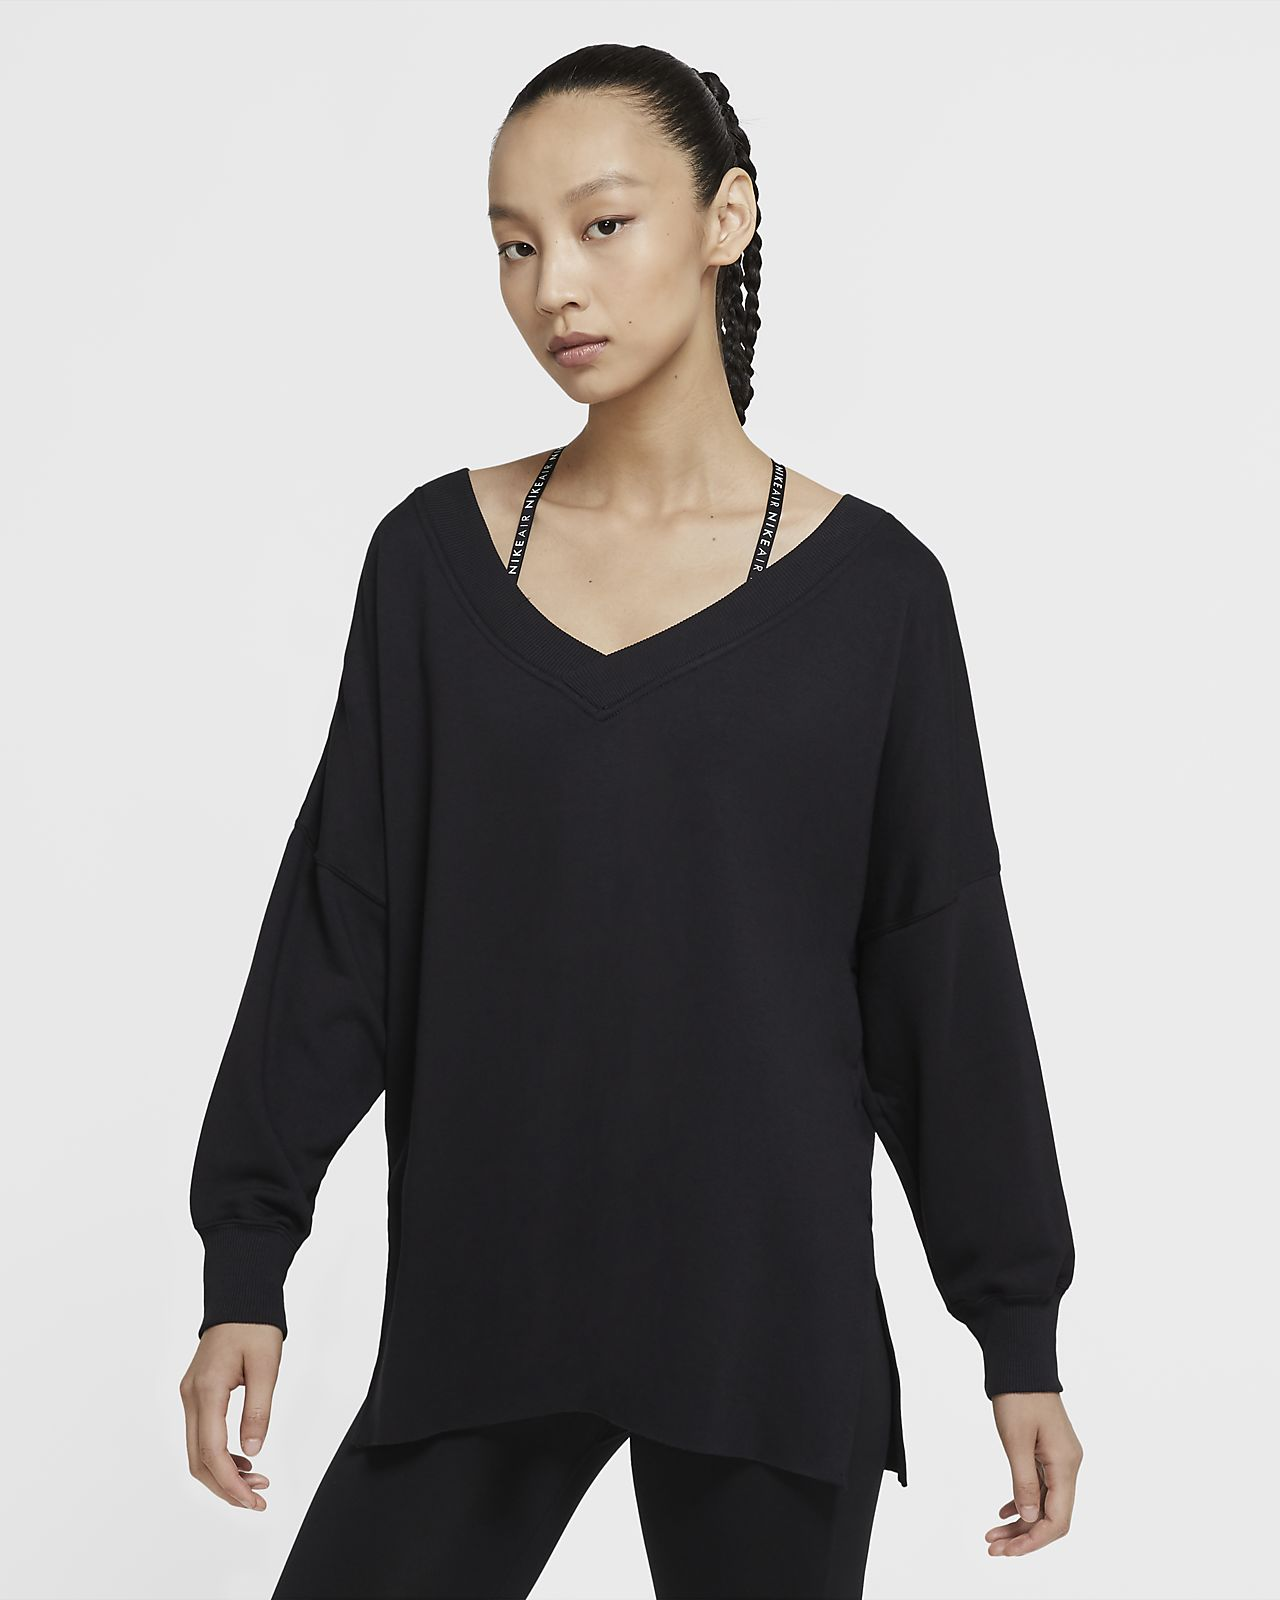 Nike Yoga Women's Cover-Up